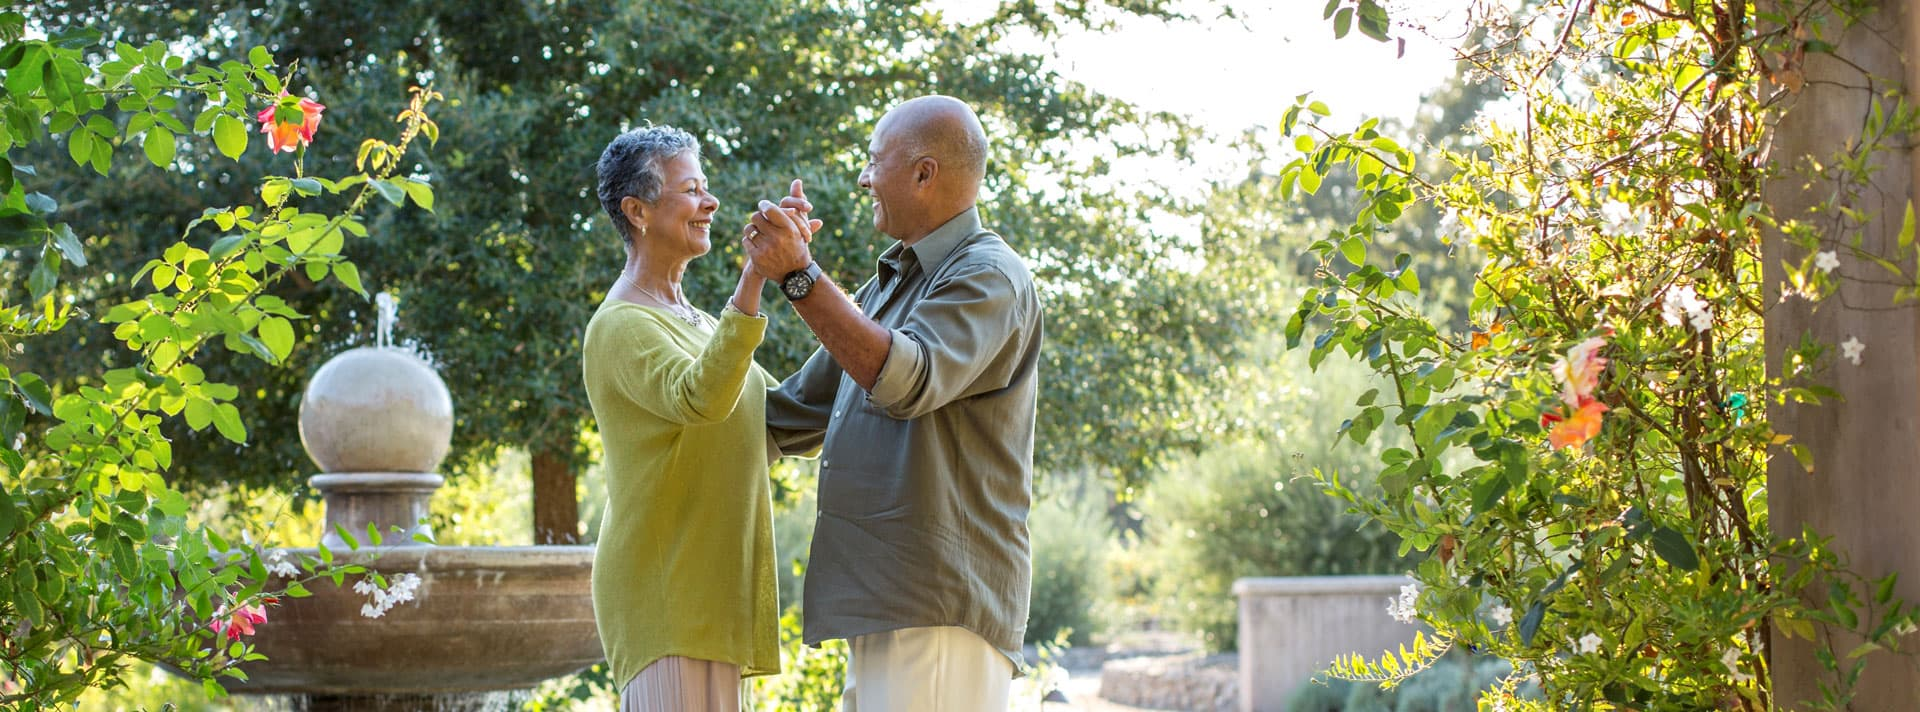 Senior couple dancing in a garden